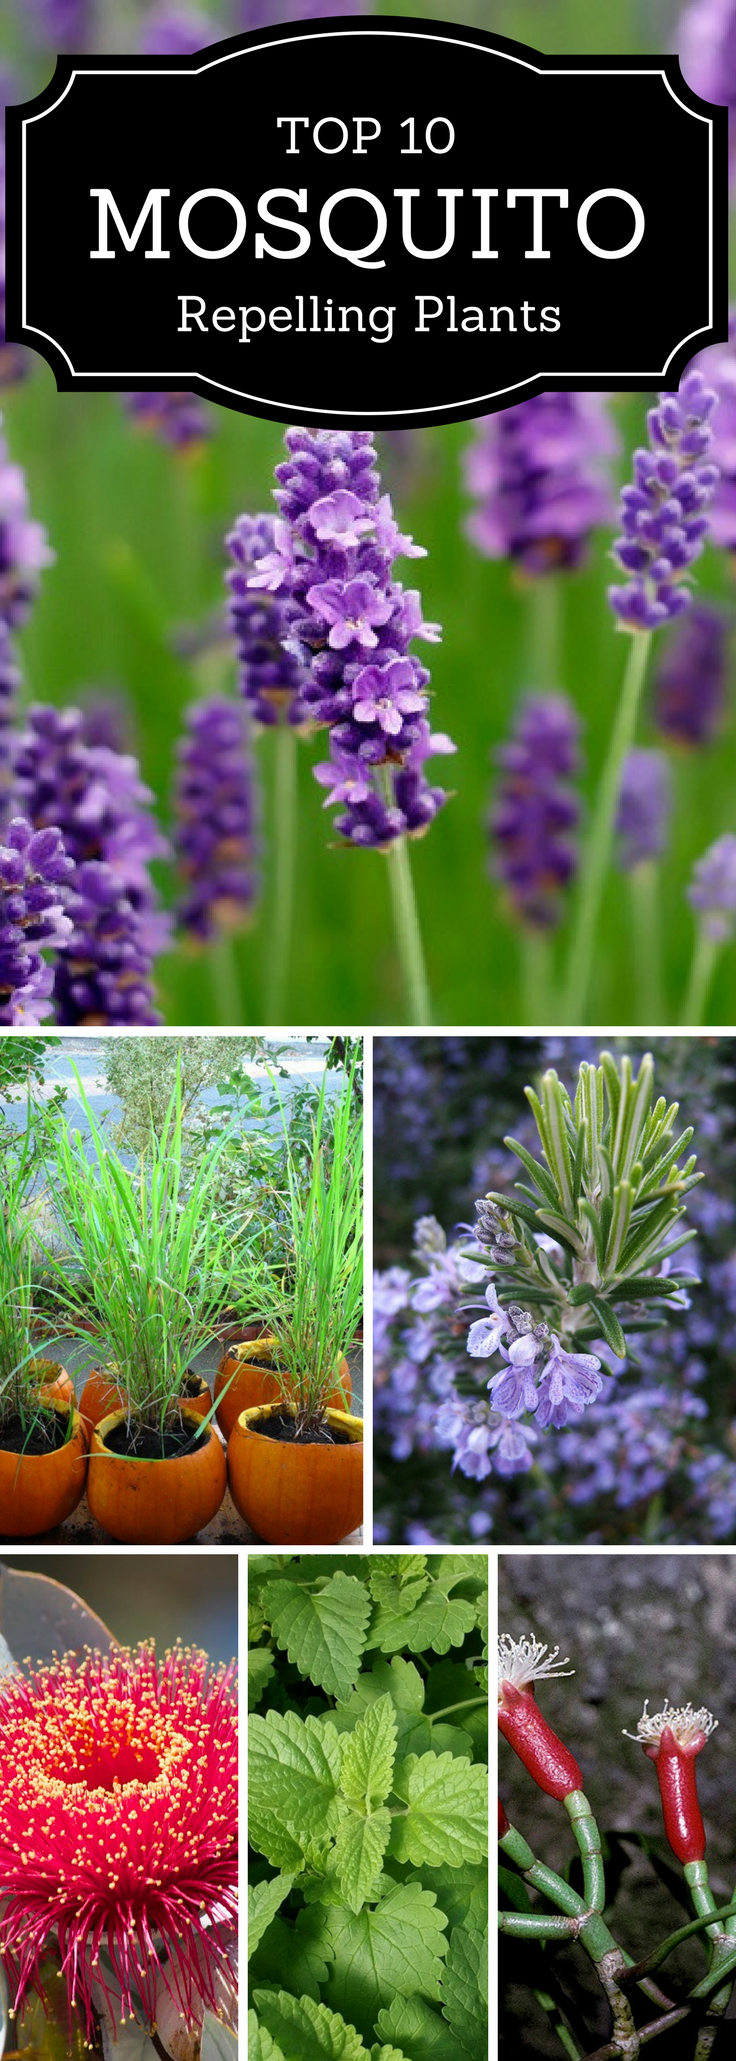 Top 10 Plants That Repel Mosquitoes | Mosquito repelling ...